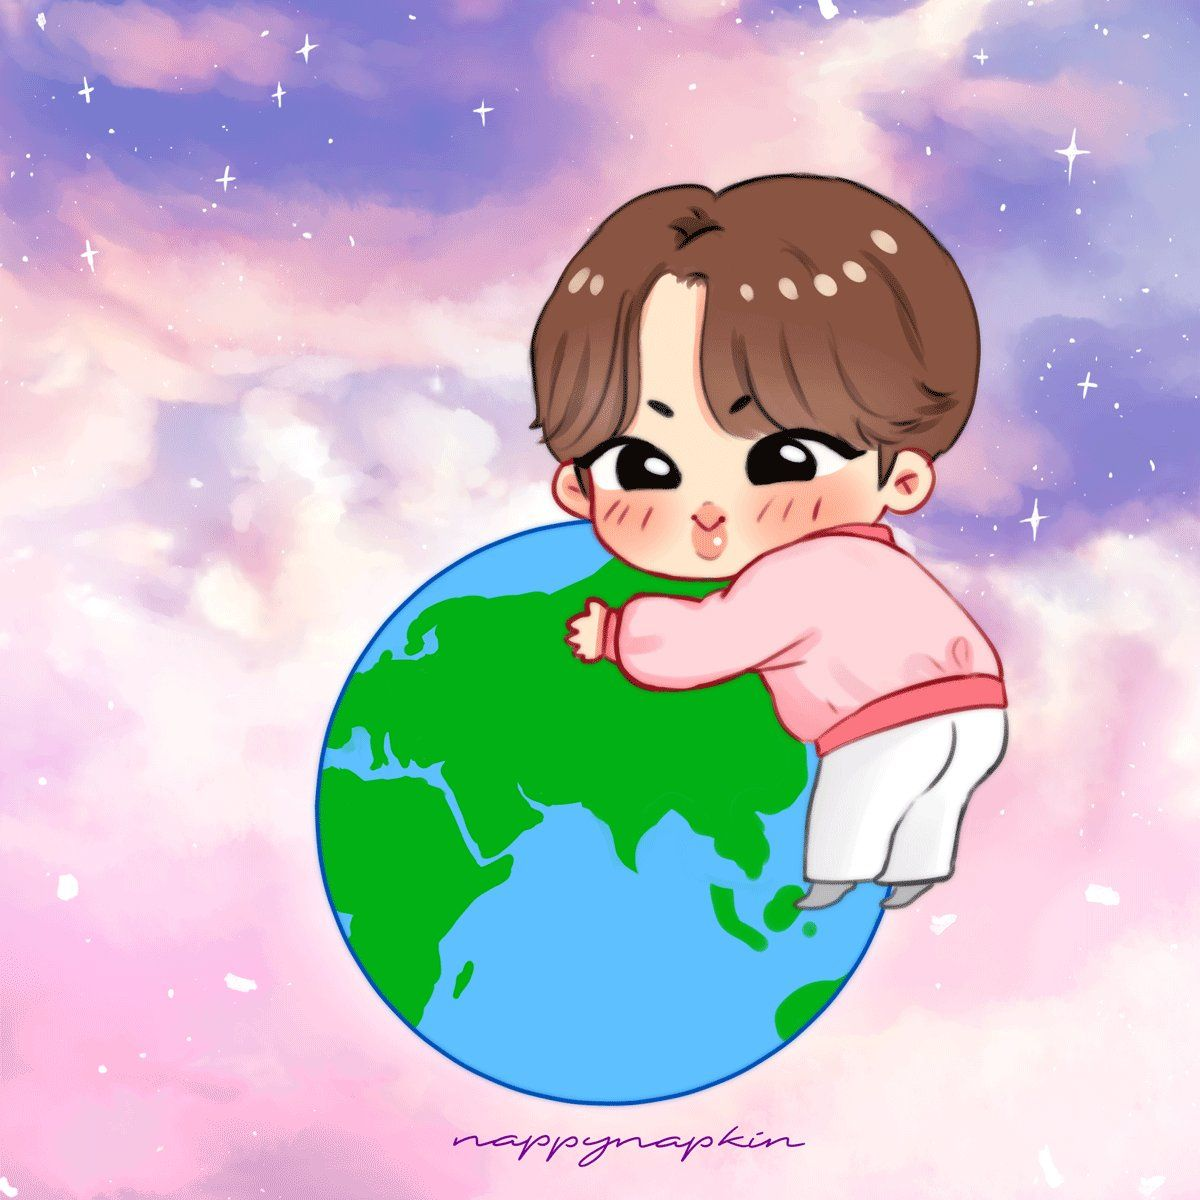 Nappi Bts Fa On Twitter Our Moon Jinnie Hugging Us And Rotating With Us Btsfanart Bts Jin Bts Twt Bts Fanart Bts Drawings Bts Chibi Bts jin cartoon wallpaper